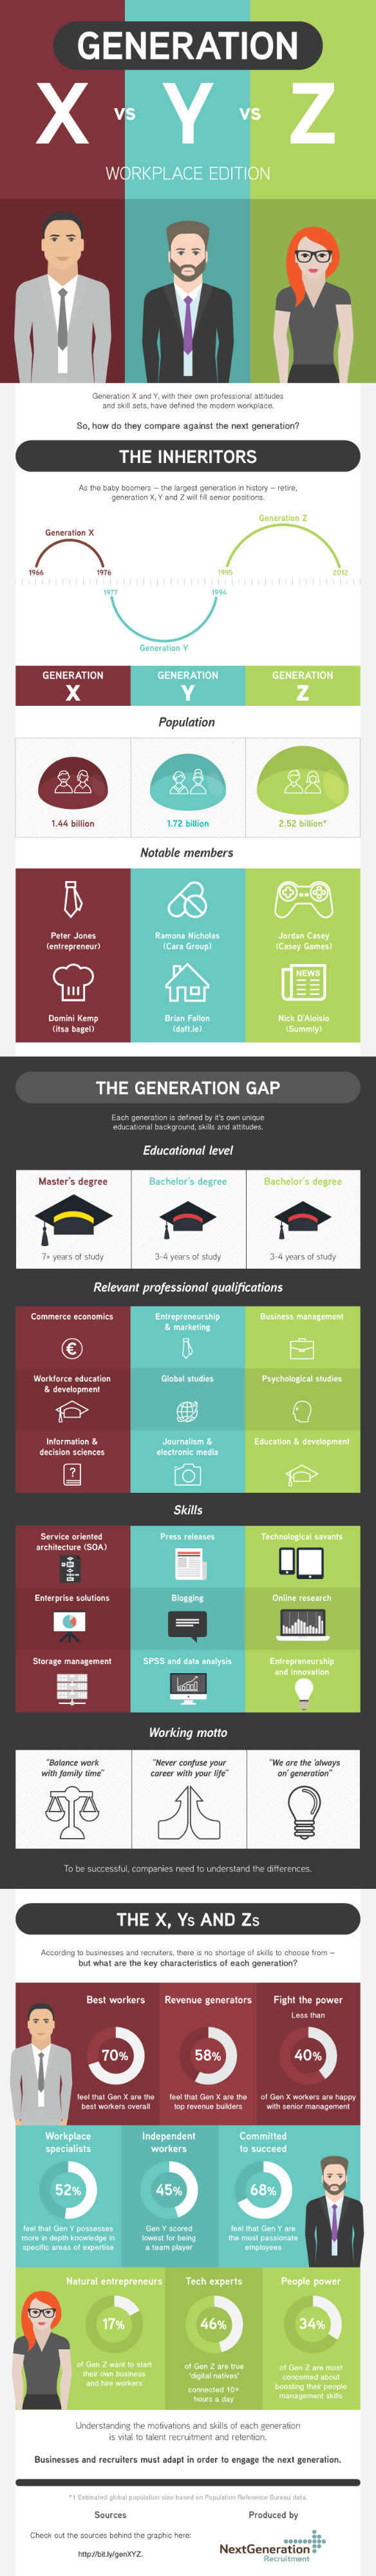 Talent Recruitment and Generation X, Y and Z [Infographic]